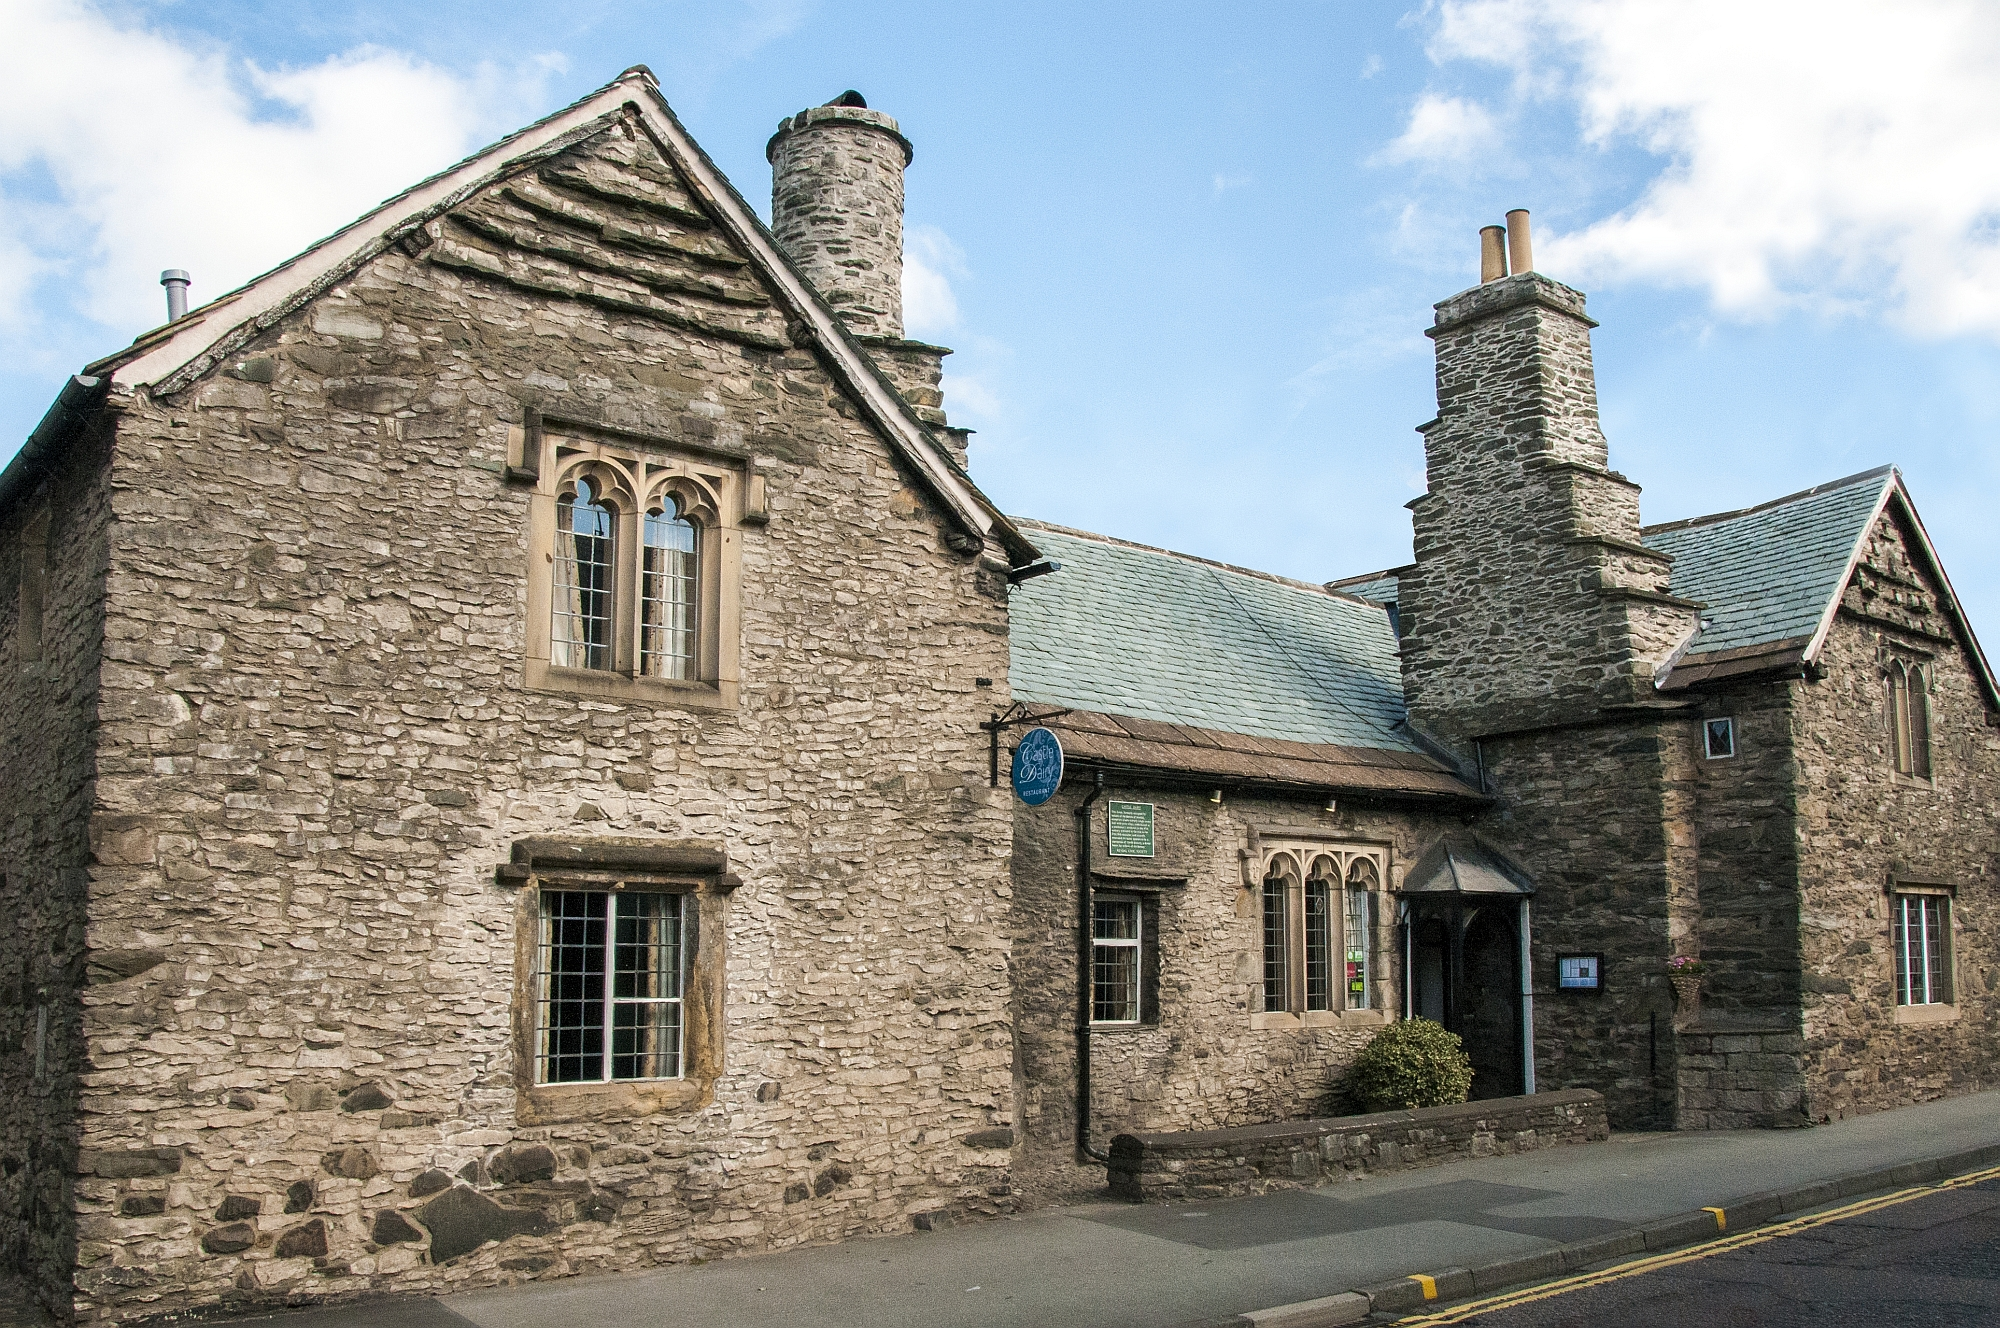 Castle Dairy Restaurant and Art Gallery offers a unique dining experience by 3AA rosette chef Chris O'Callaghan and his Kendal College apprentices in a historic building dating back to the 14th century